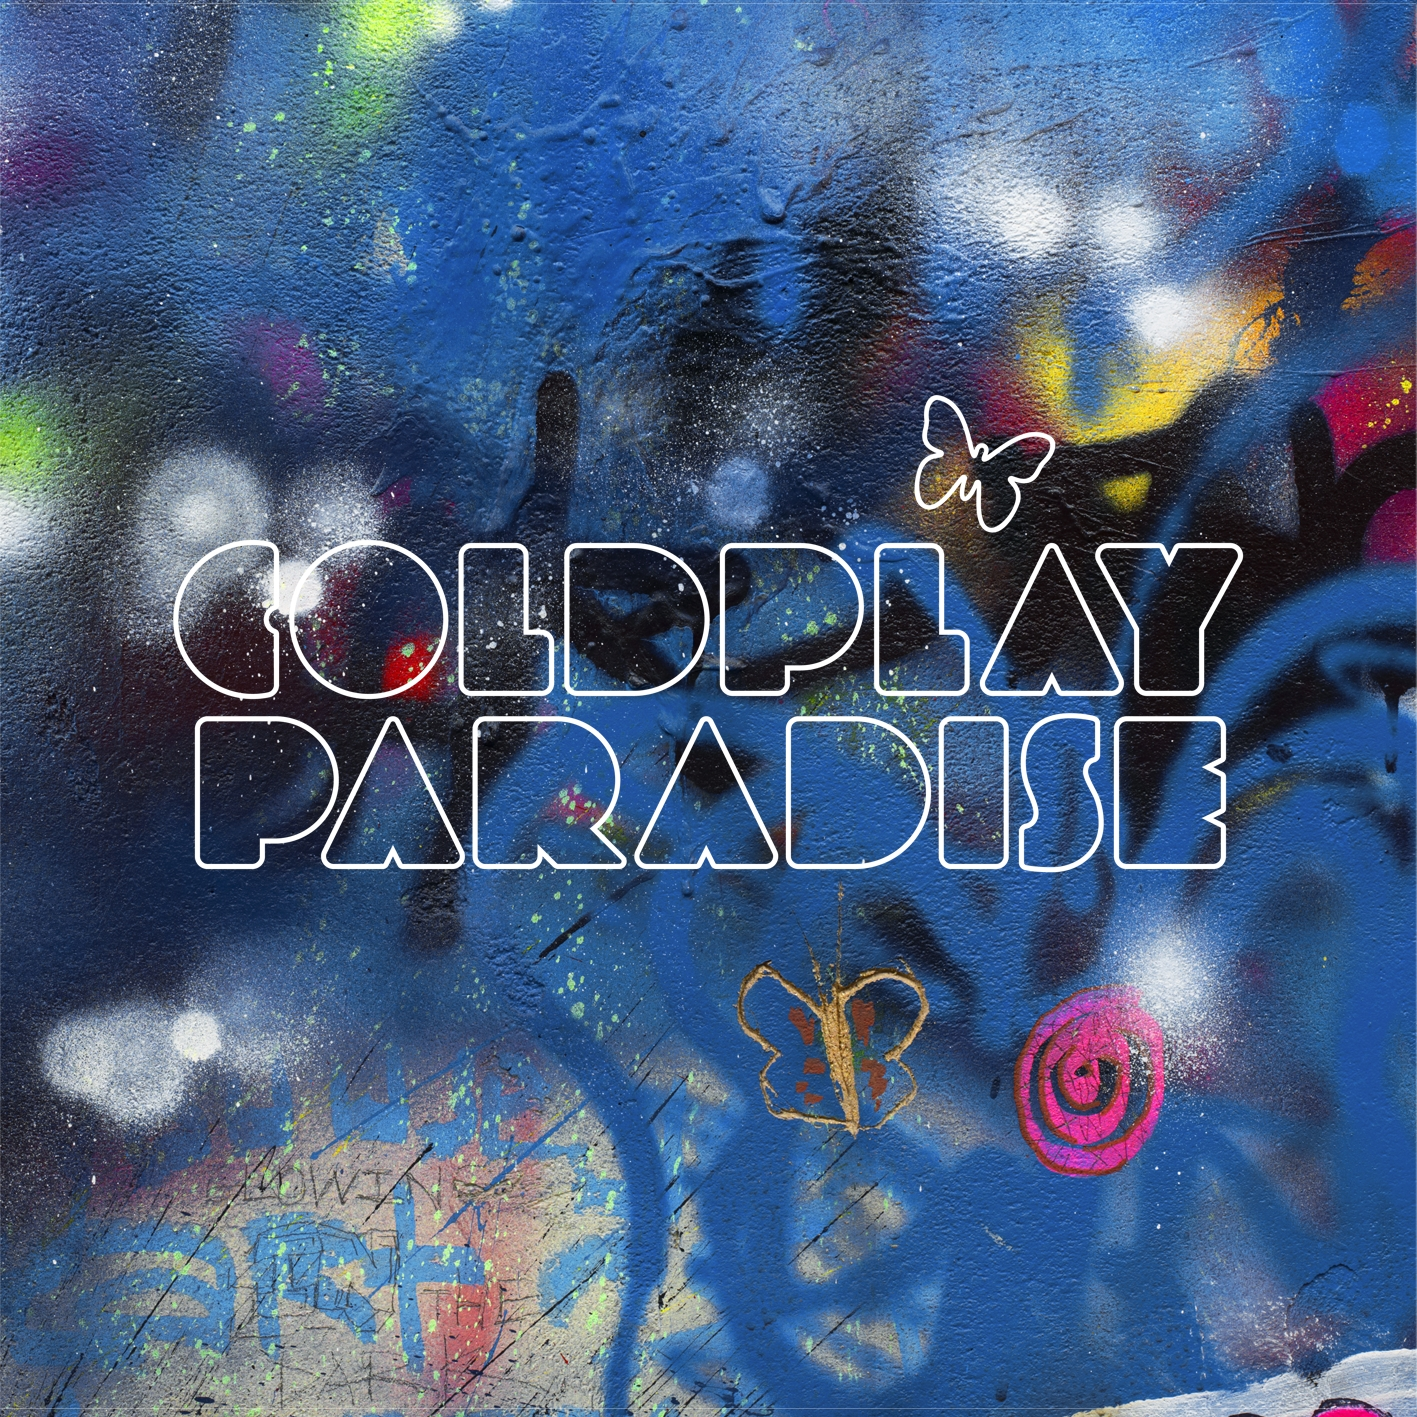 http://elka.pl/files10/coldplay_-_cover.jpeg